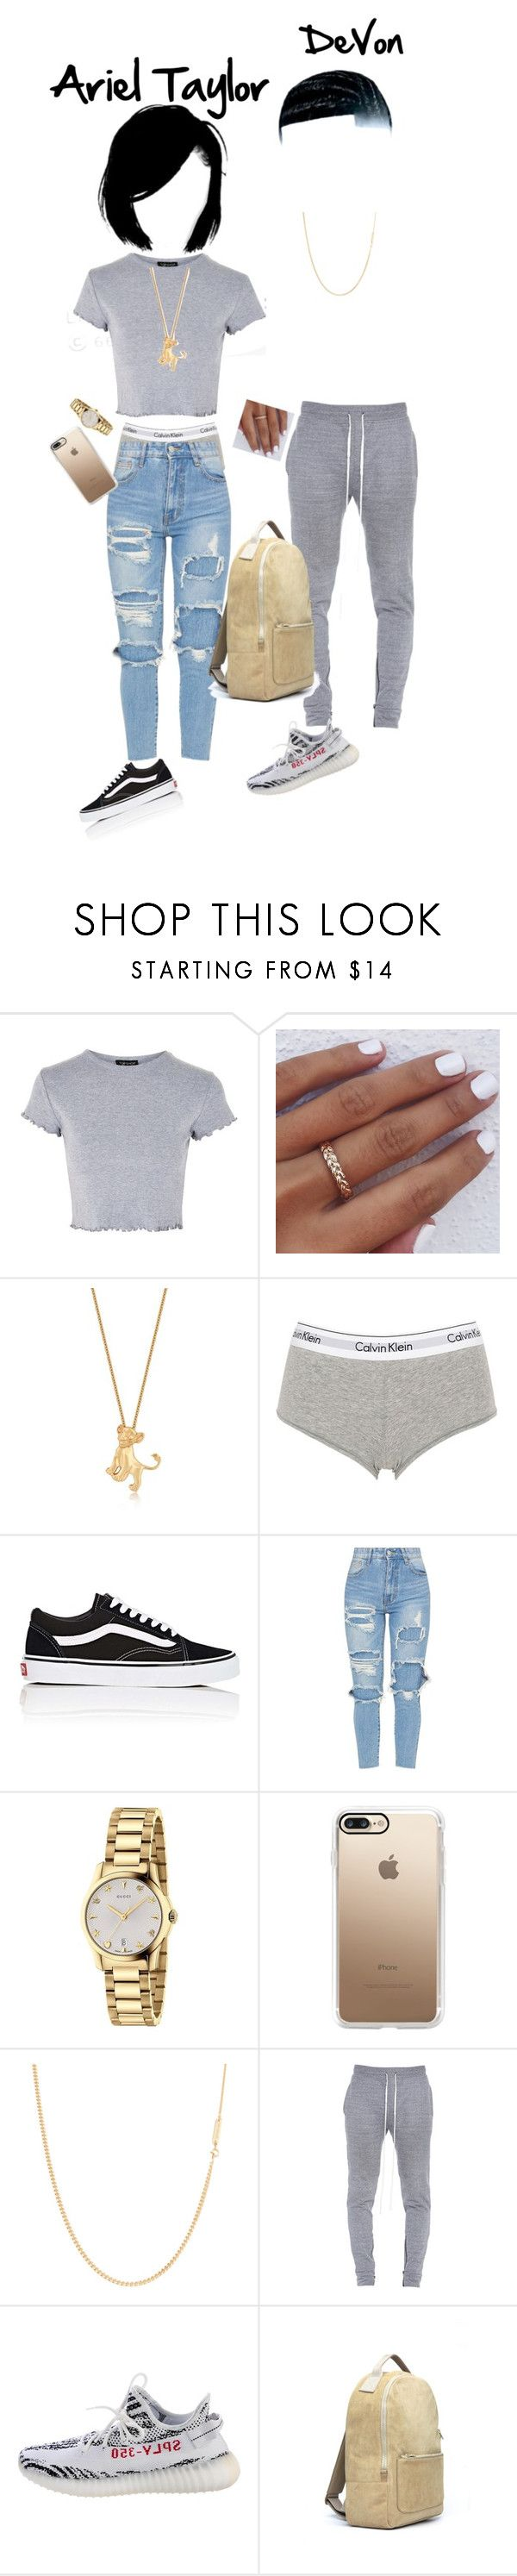 """Harvard kids"" by narmaniorange ❤ liked on Polyvore featuring Topshop, Disney, Calvin Klein Underwear, Vans, Gucci, Casetify, A.P.C., Fear of God and Yeezy by Kanye West"